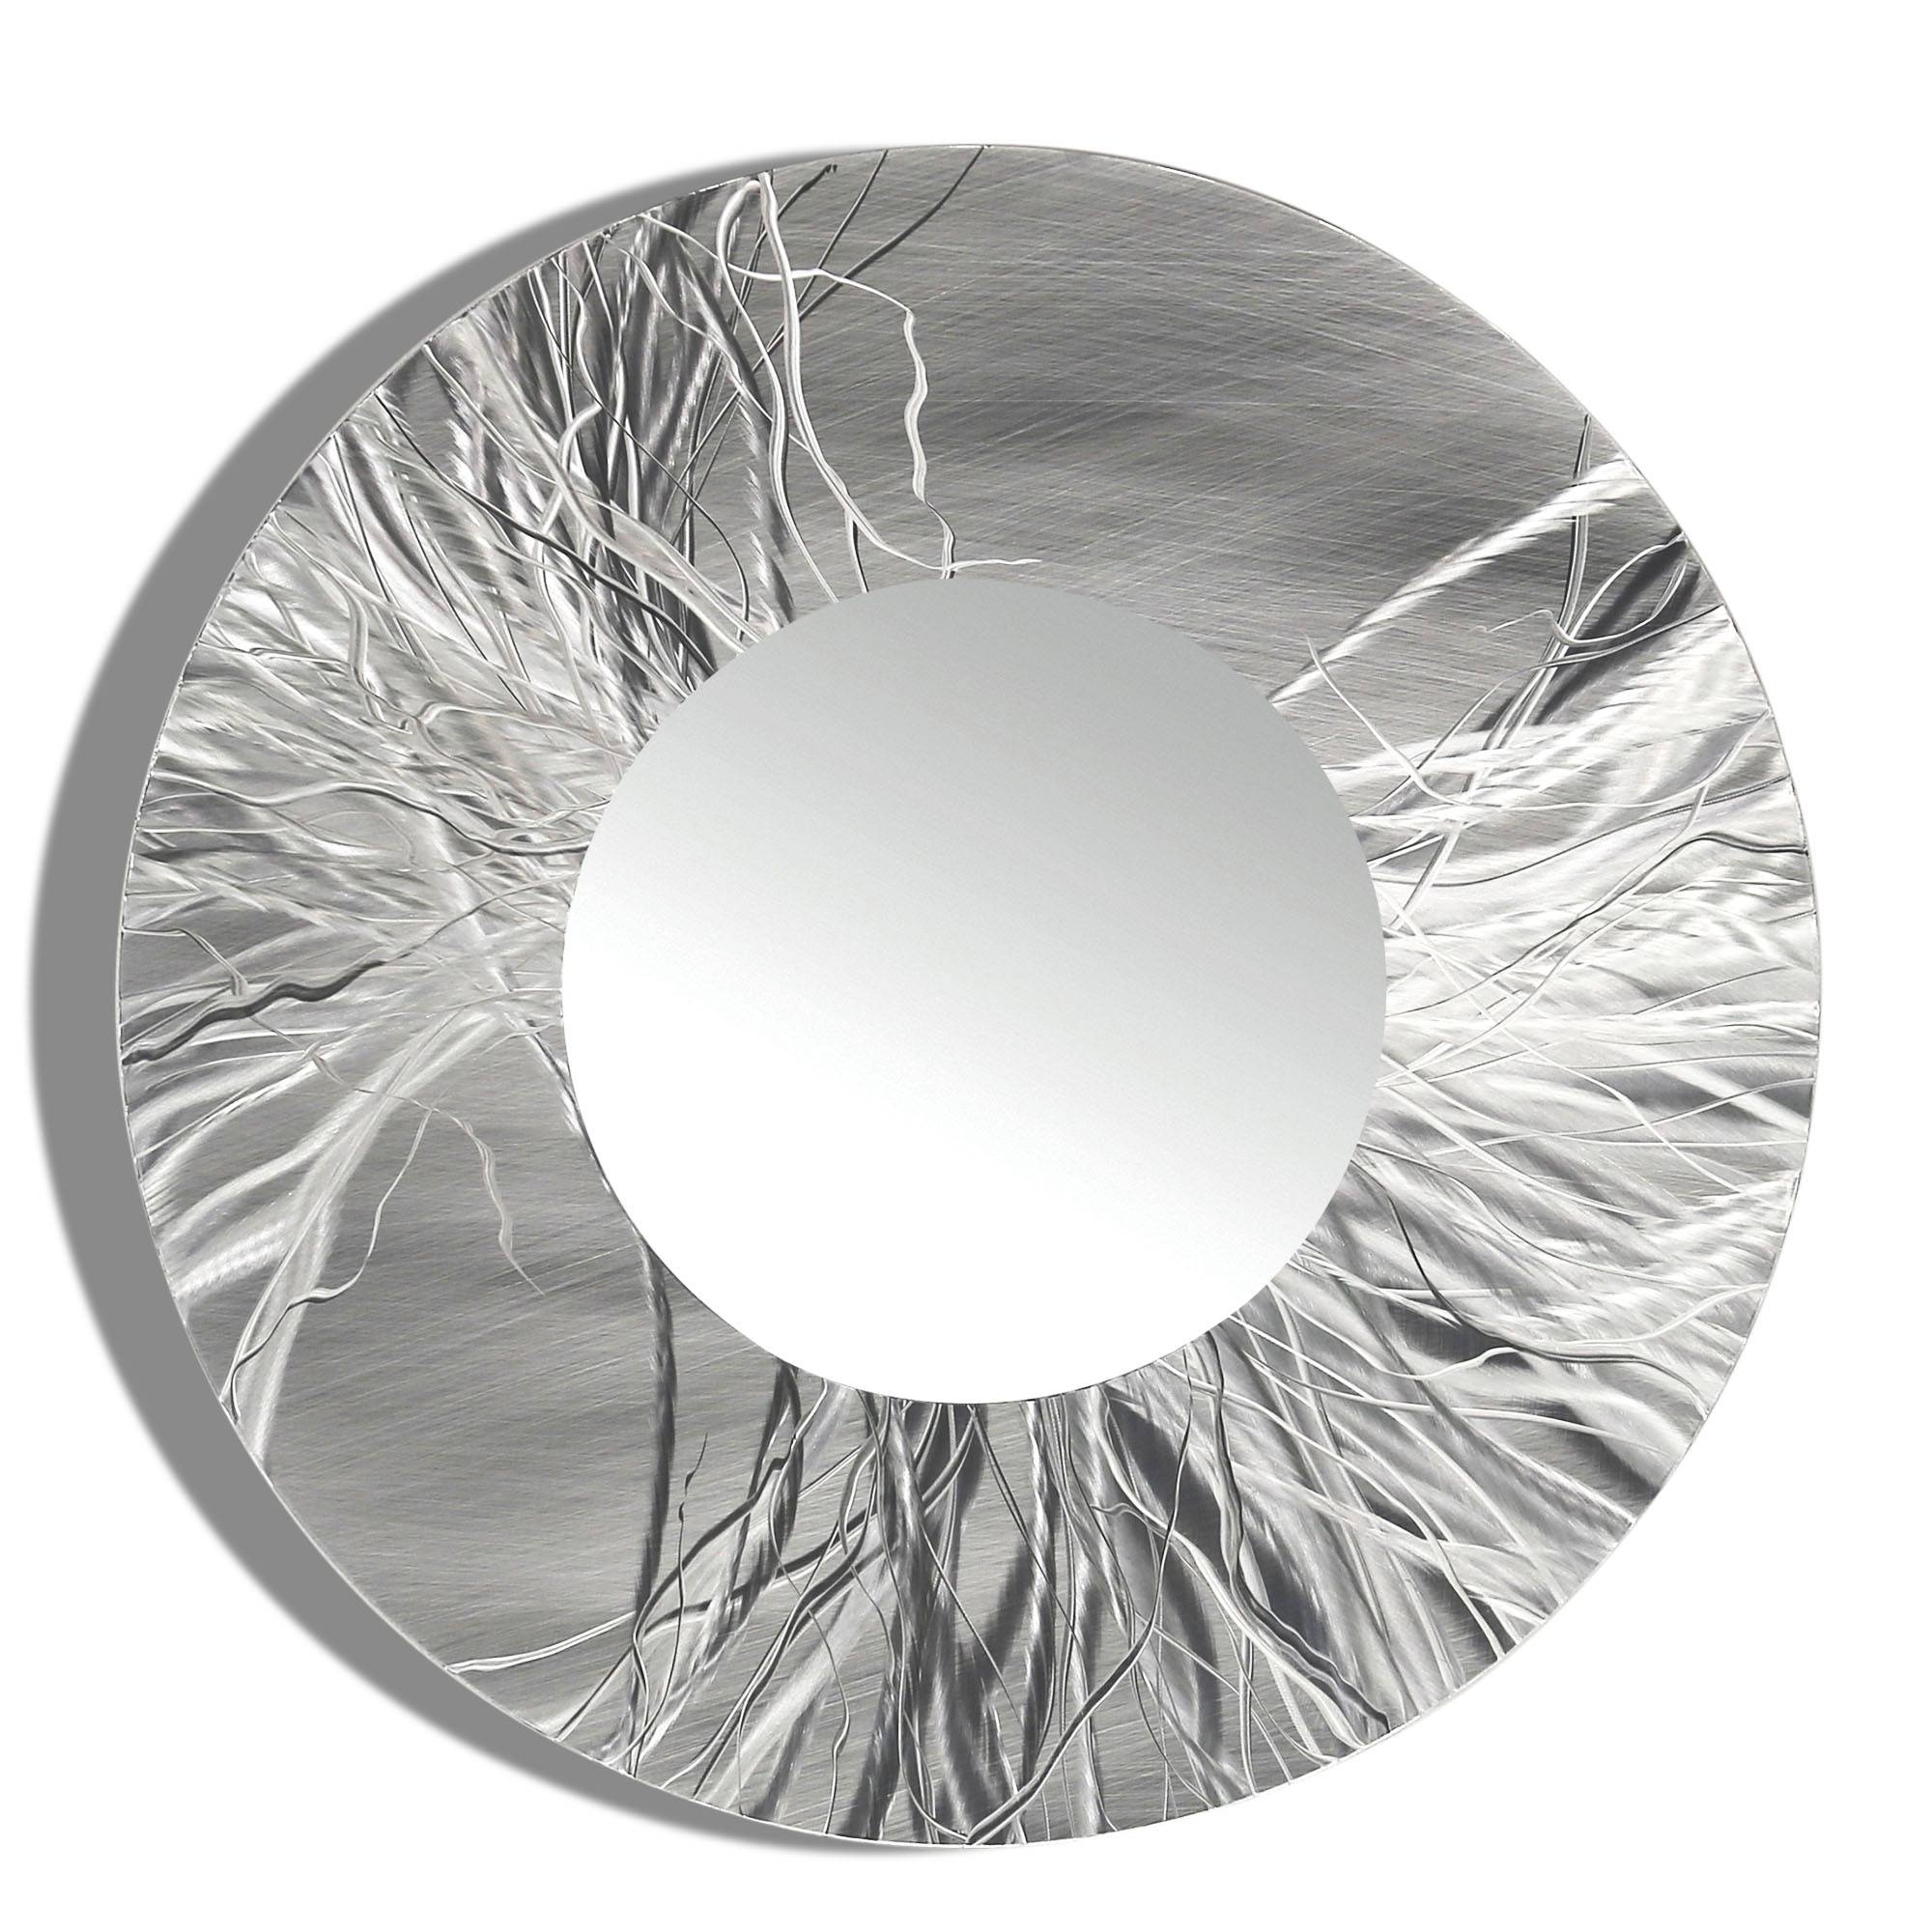 Mirror 104 - Round Silver Contemporary Metal Wall Art Round Mirror pertaining to Contemporary Round Mirrors (Image 17 of 25)